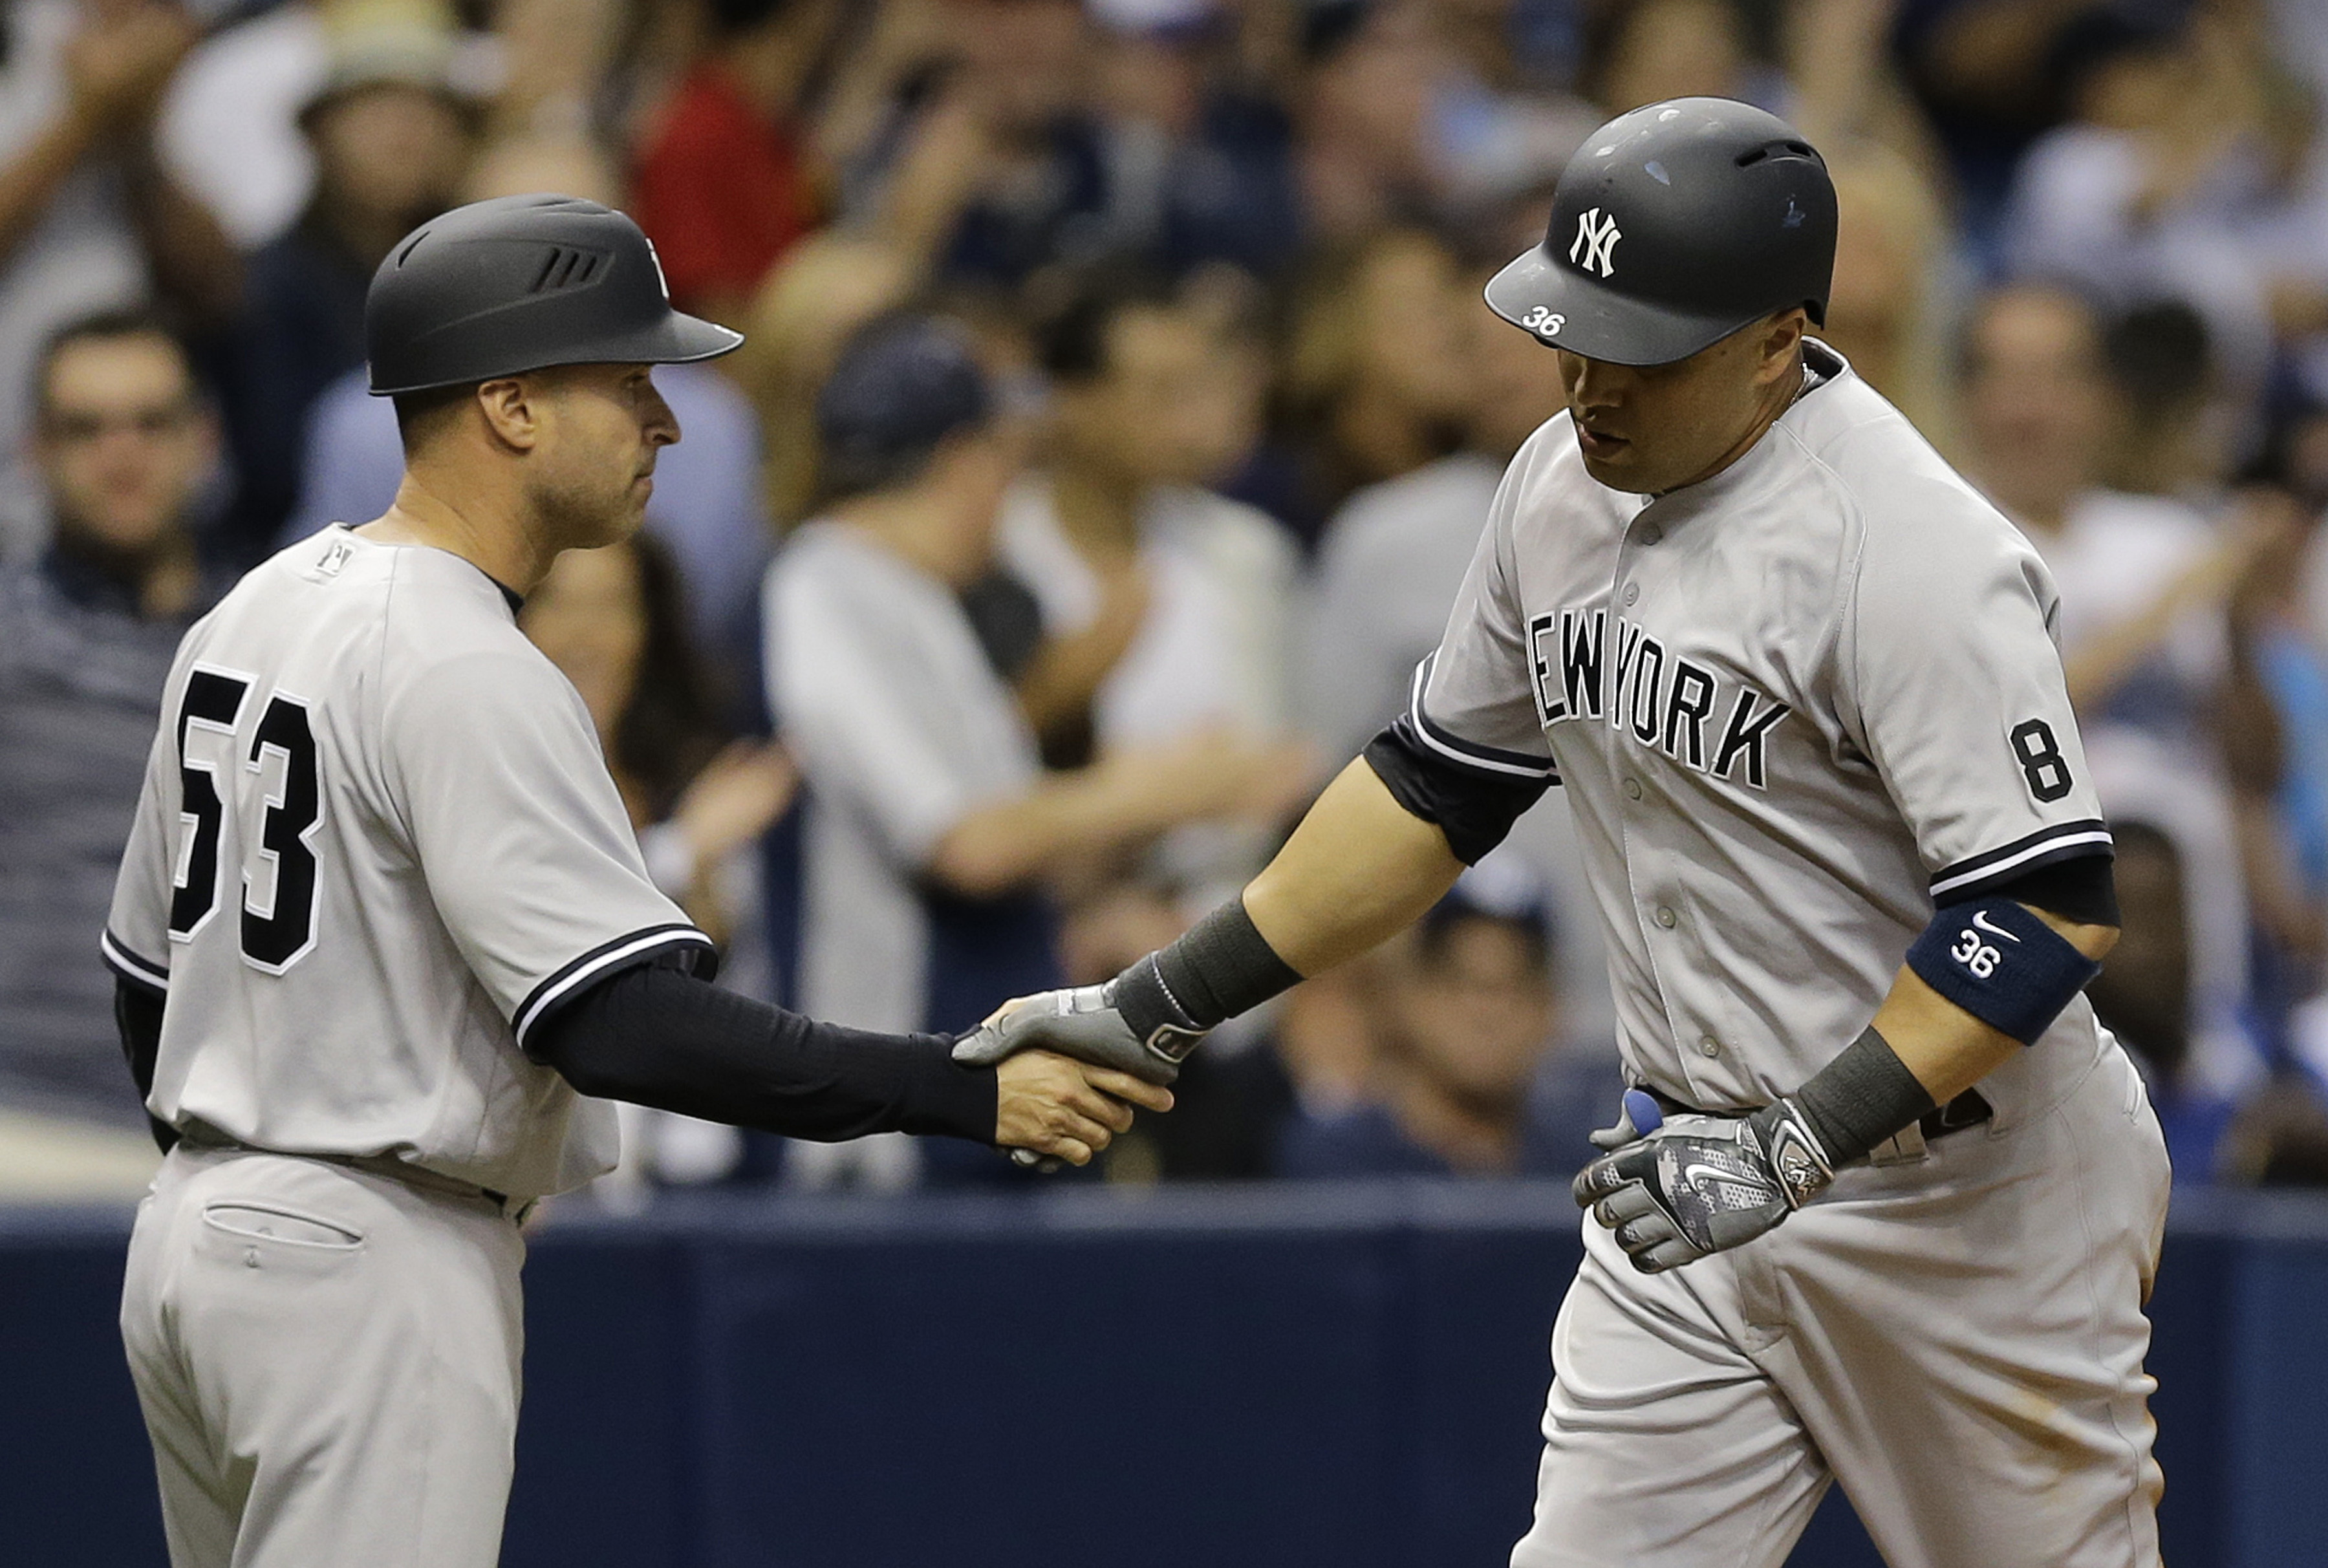 New York Yankees' Carlos Beltran, right, shakes hands with third base coach Joe Espada after hitting a home run off Tampa Bay Rays starting pitcher Chris Archer during the eighth inning of a baseball game Friday, May 27, 2016, in St. Petersburg, Fla. (AP